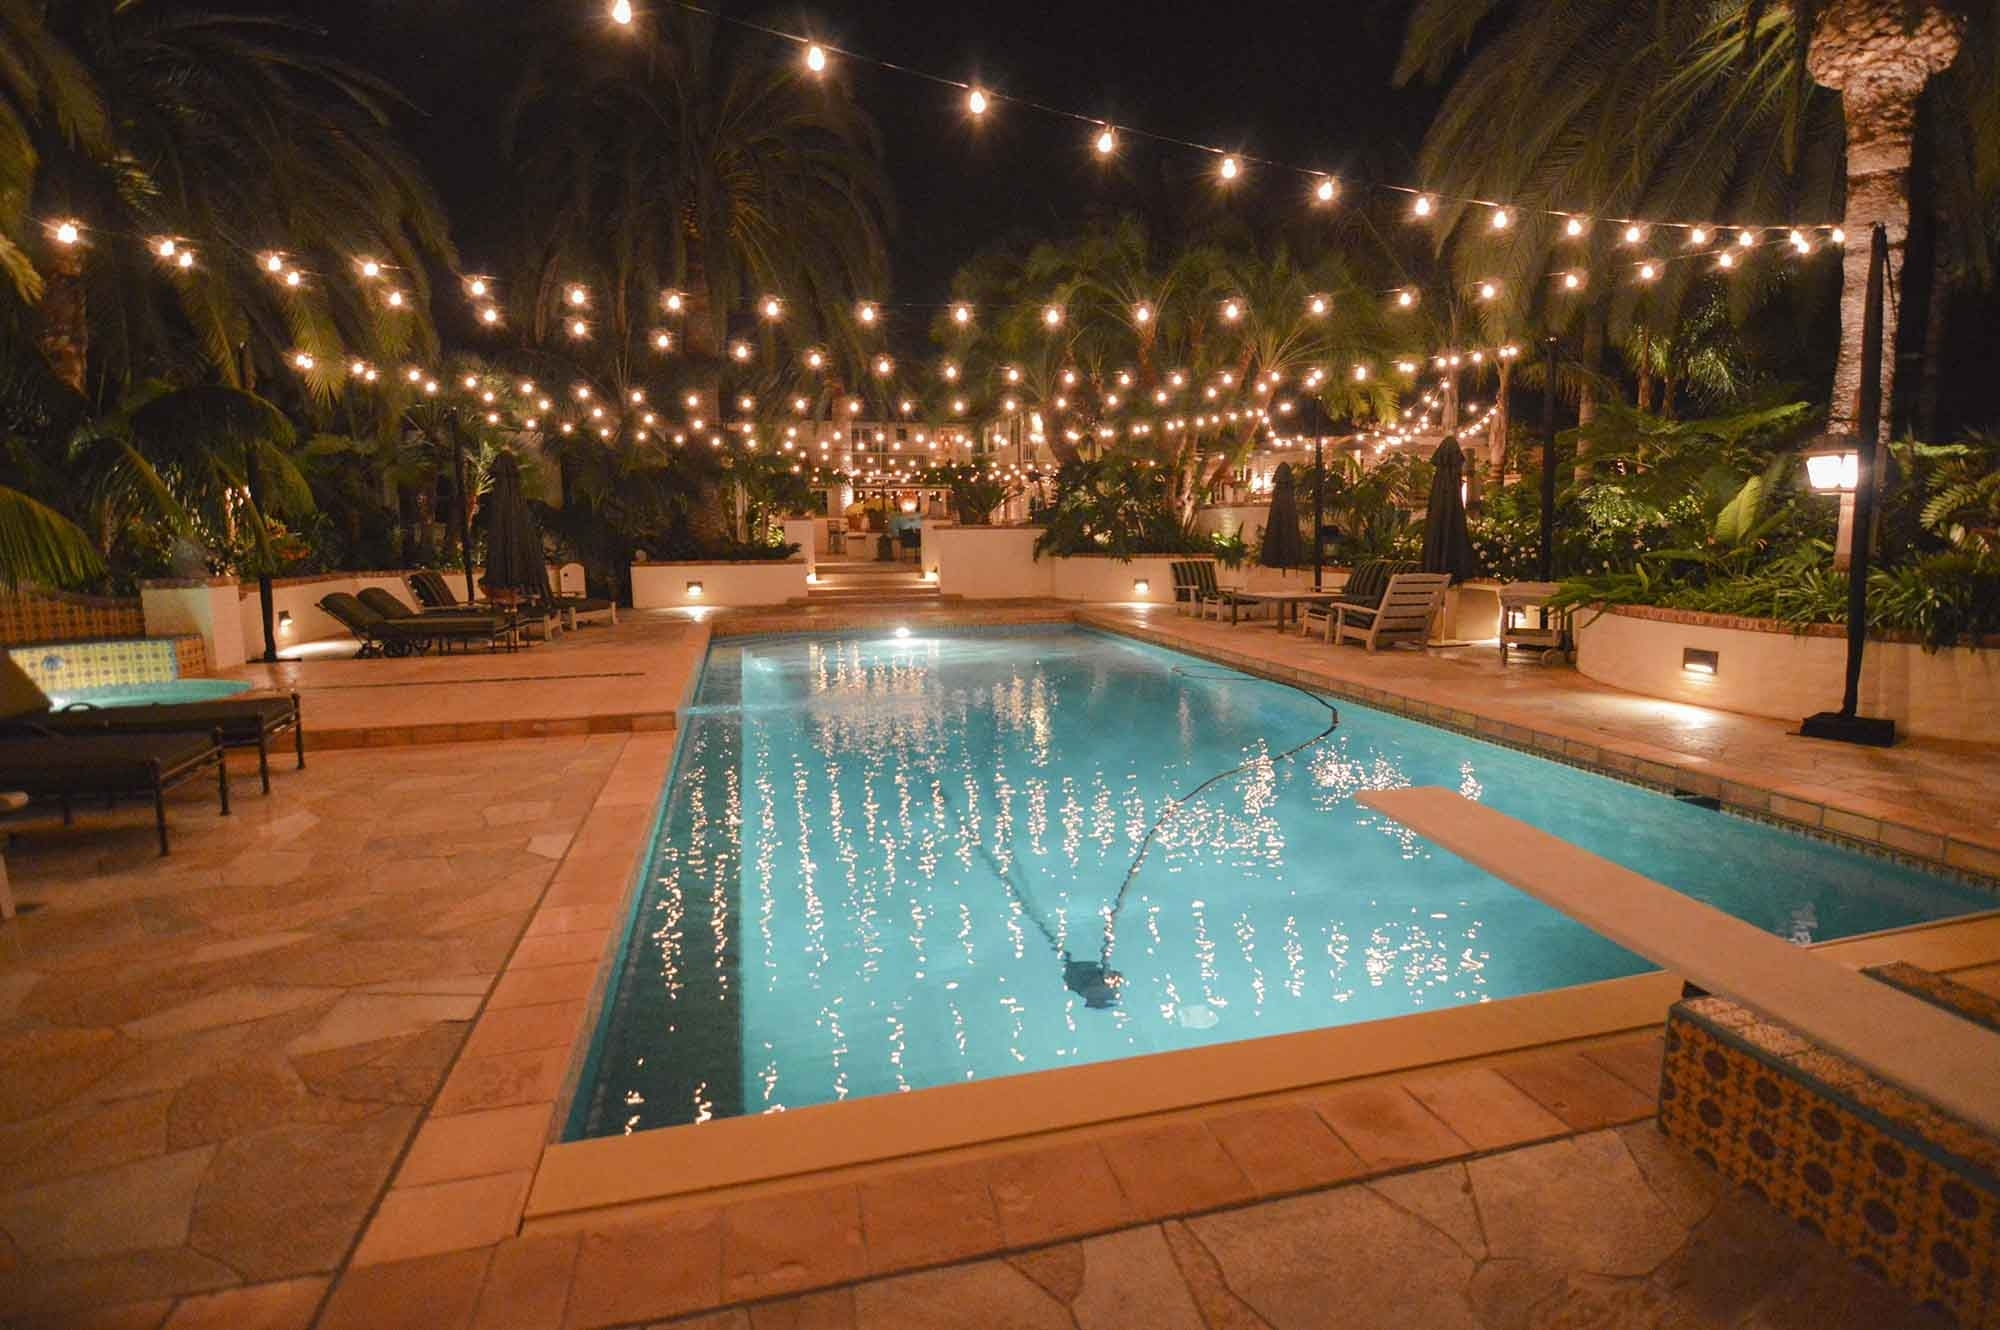 Market Lights, Party, Globe & Patio String Lights Outdoor within Outdoor Pool Lanterns (Image 16 of 20)